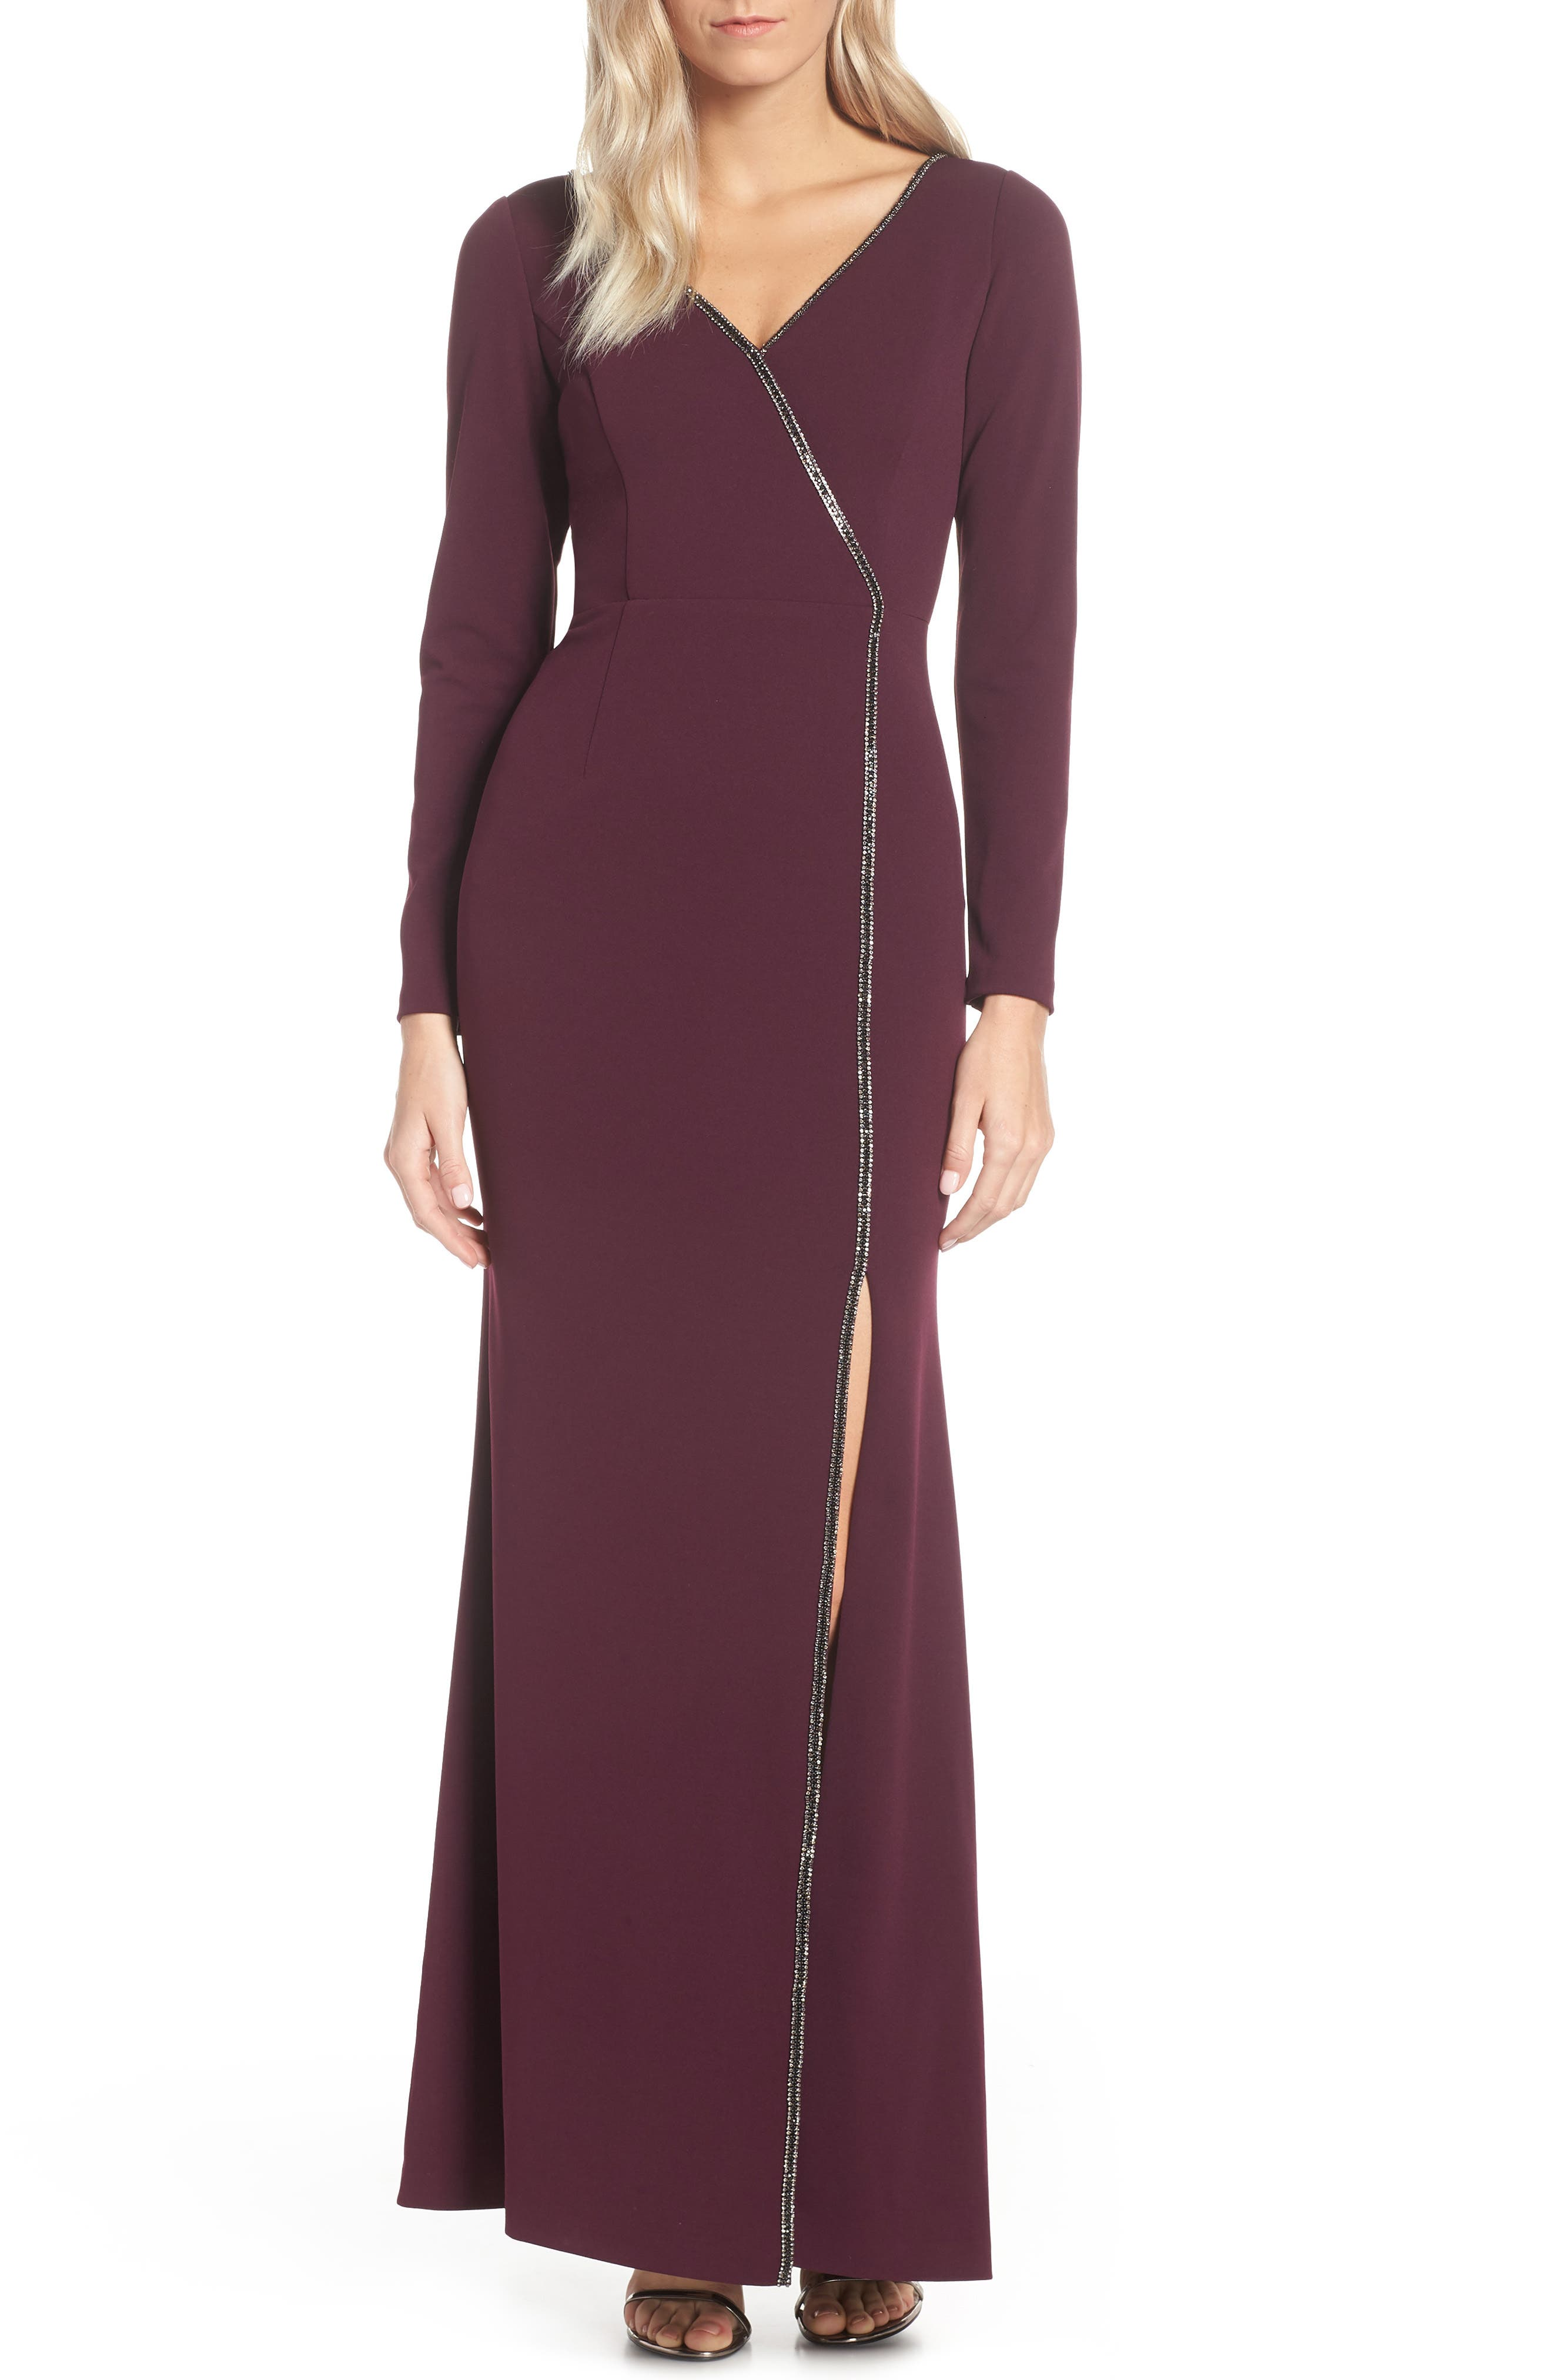 Adrianna Papell Crystal Trim Crepe Evening Dress